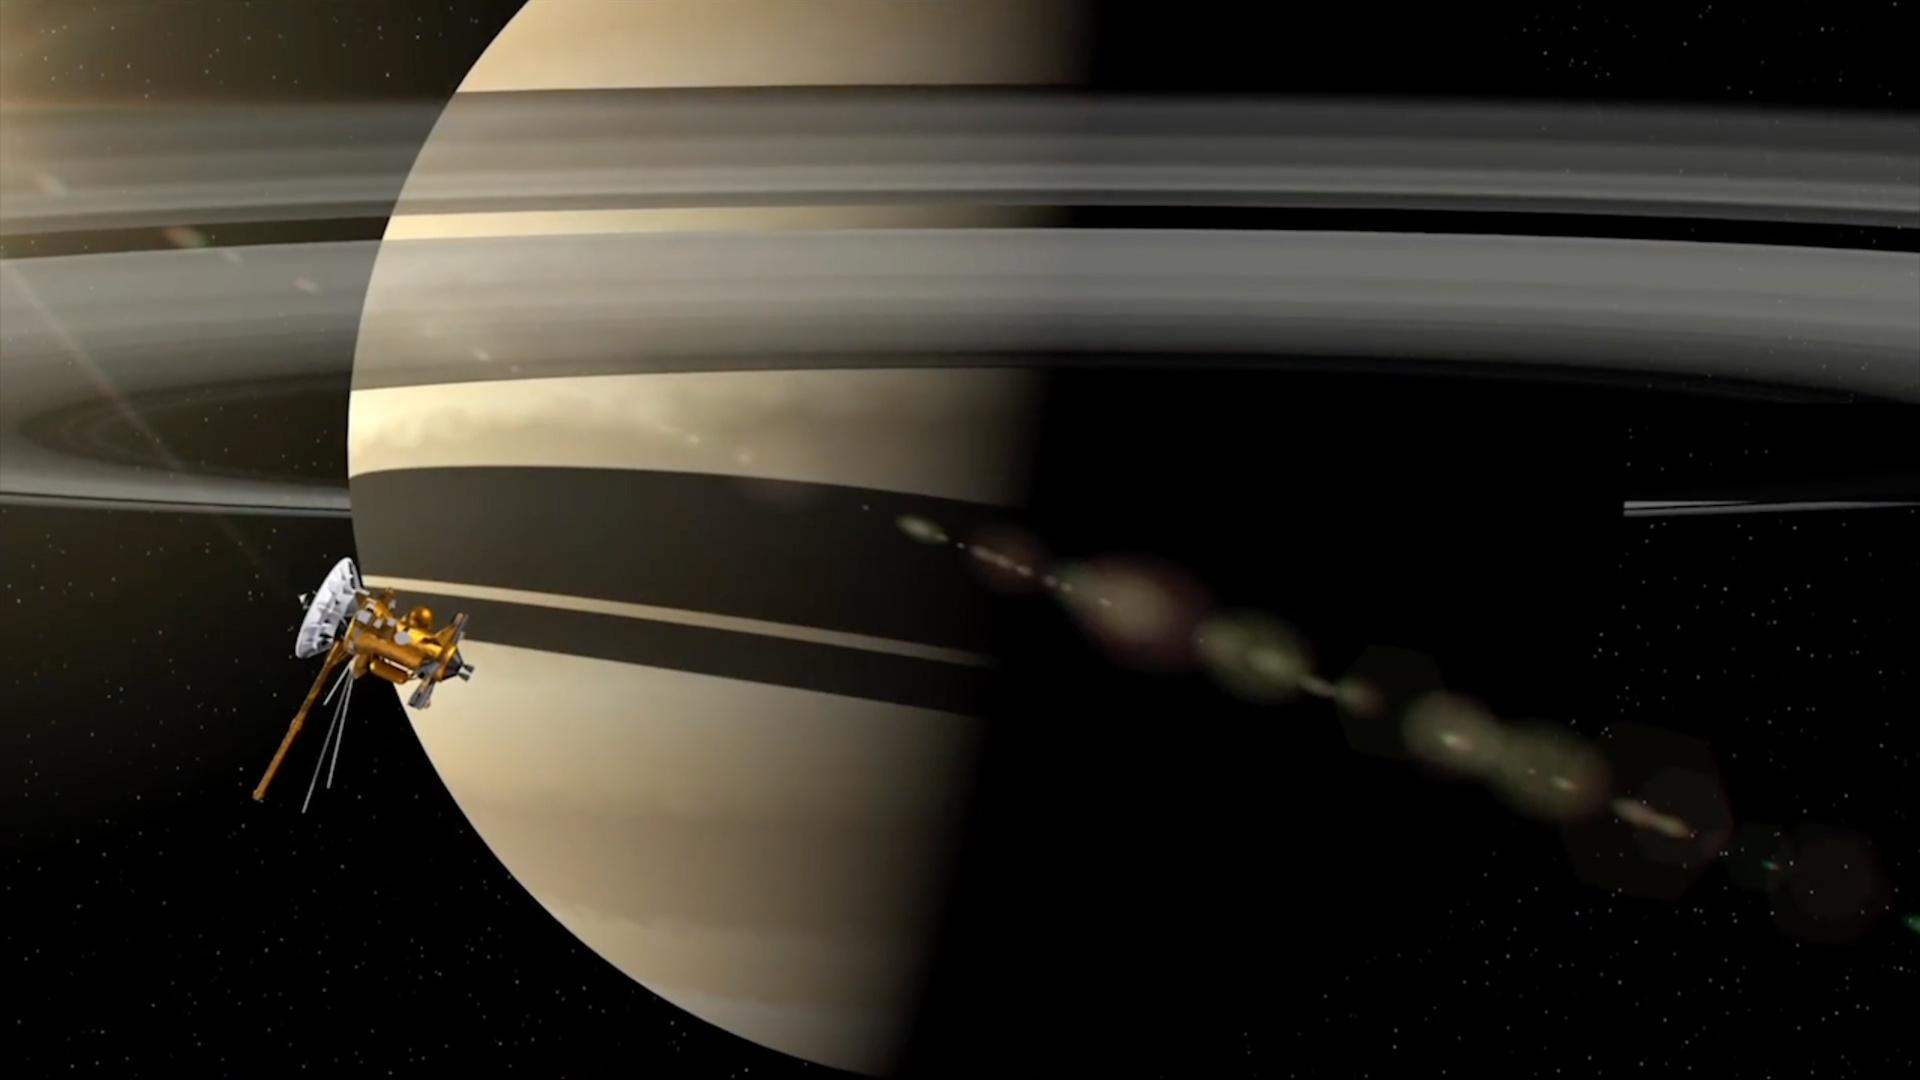 Amazing Discoveries from Cassini